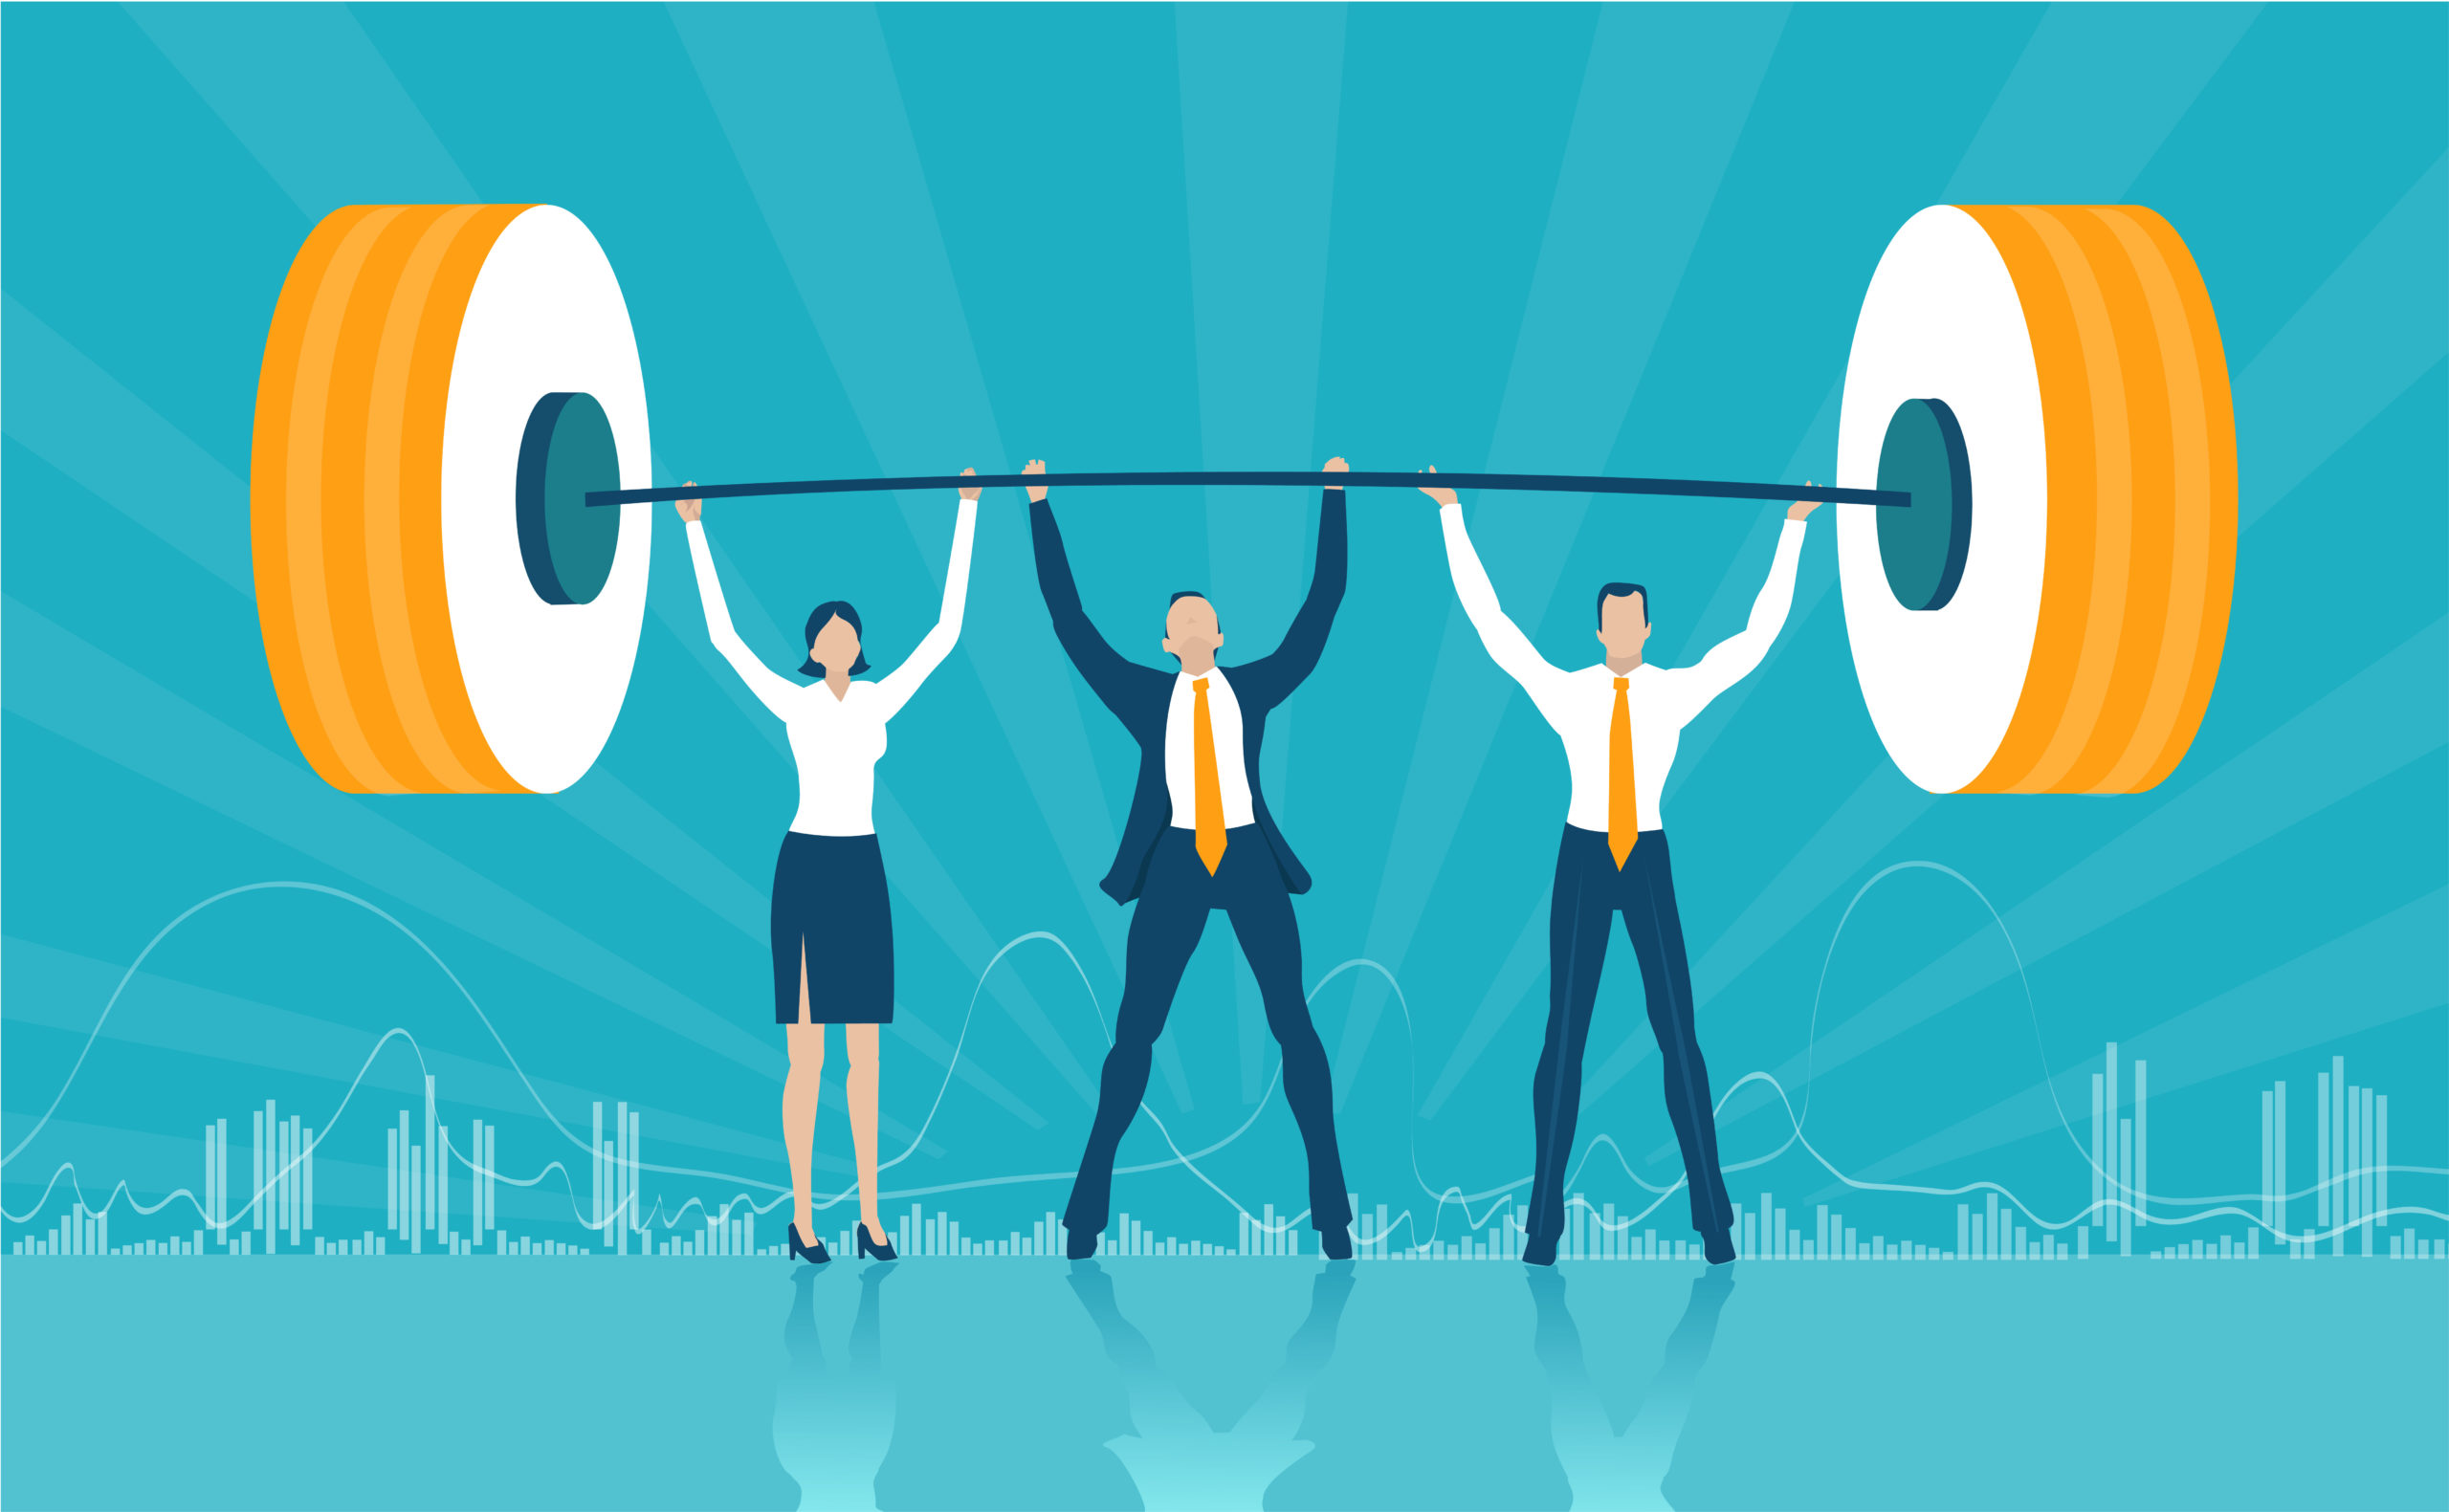 Business people holding the weight up. Working together, support and delivery support idea.